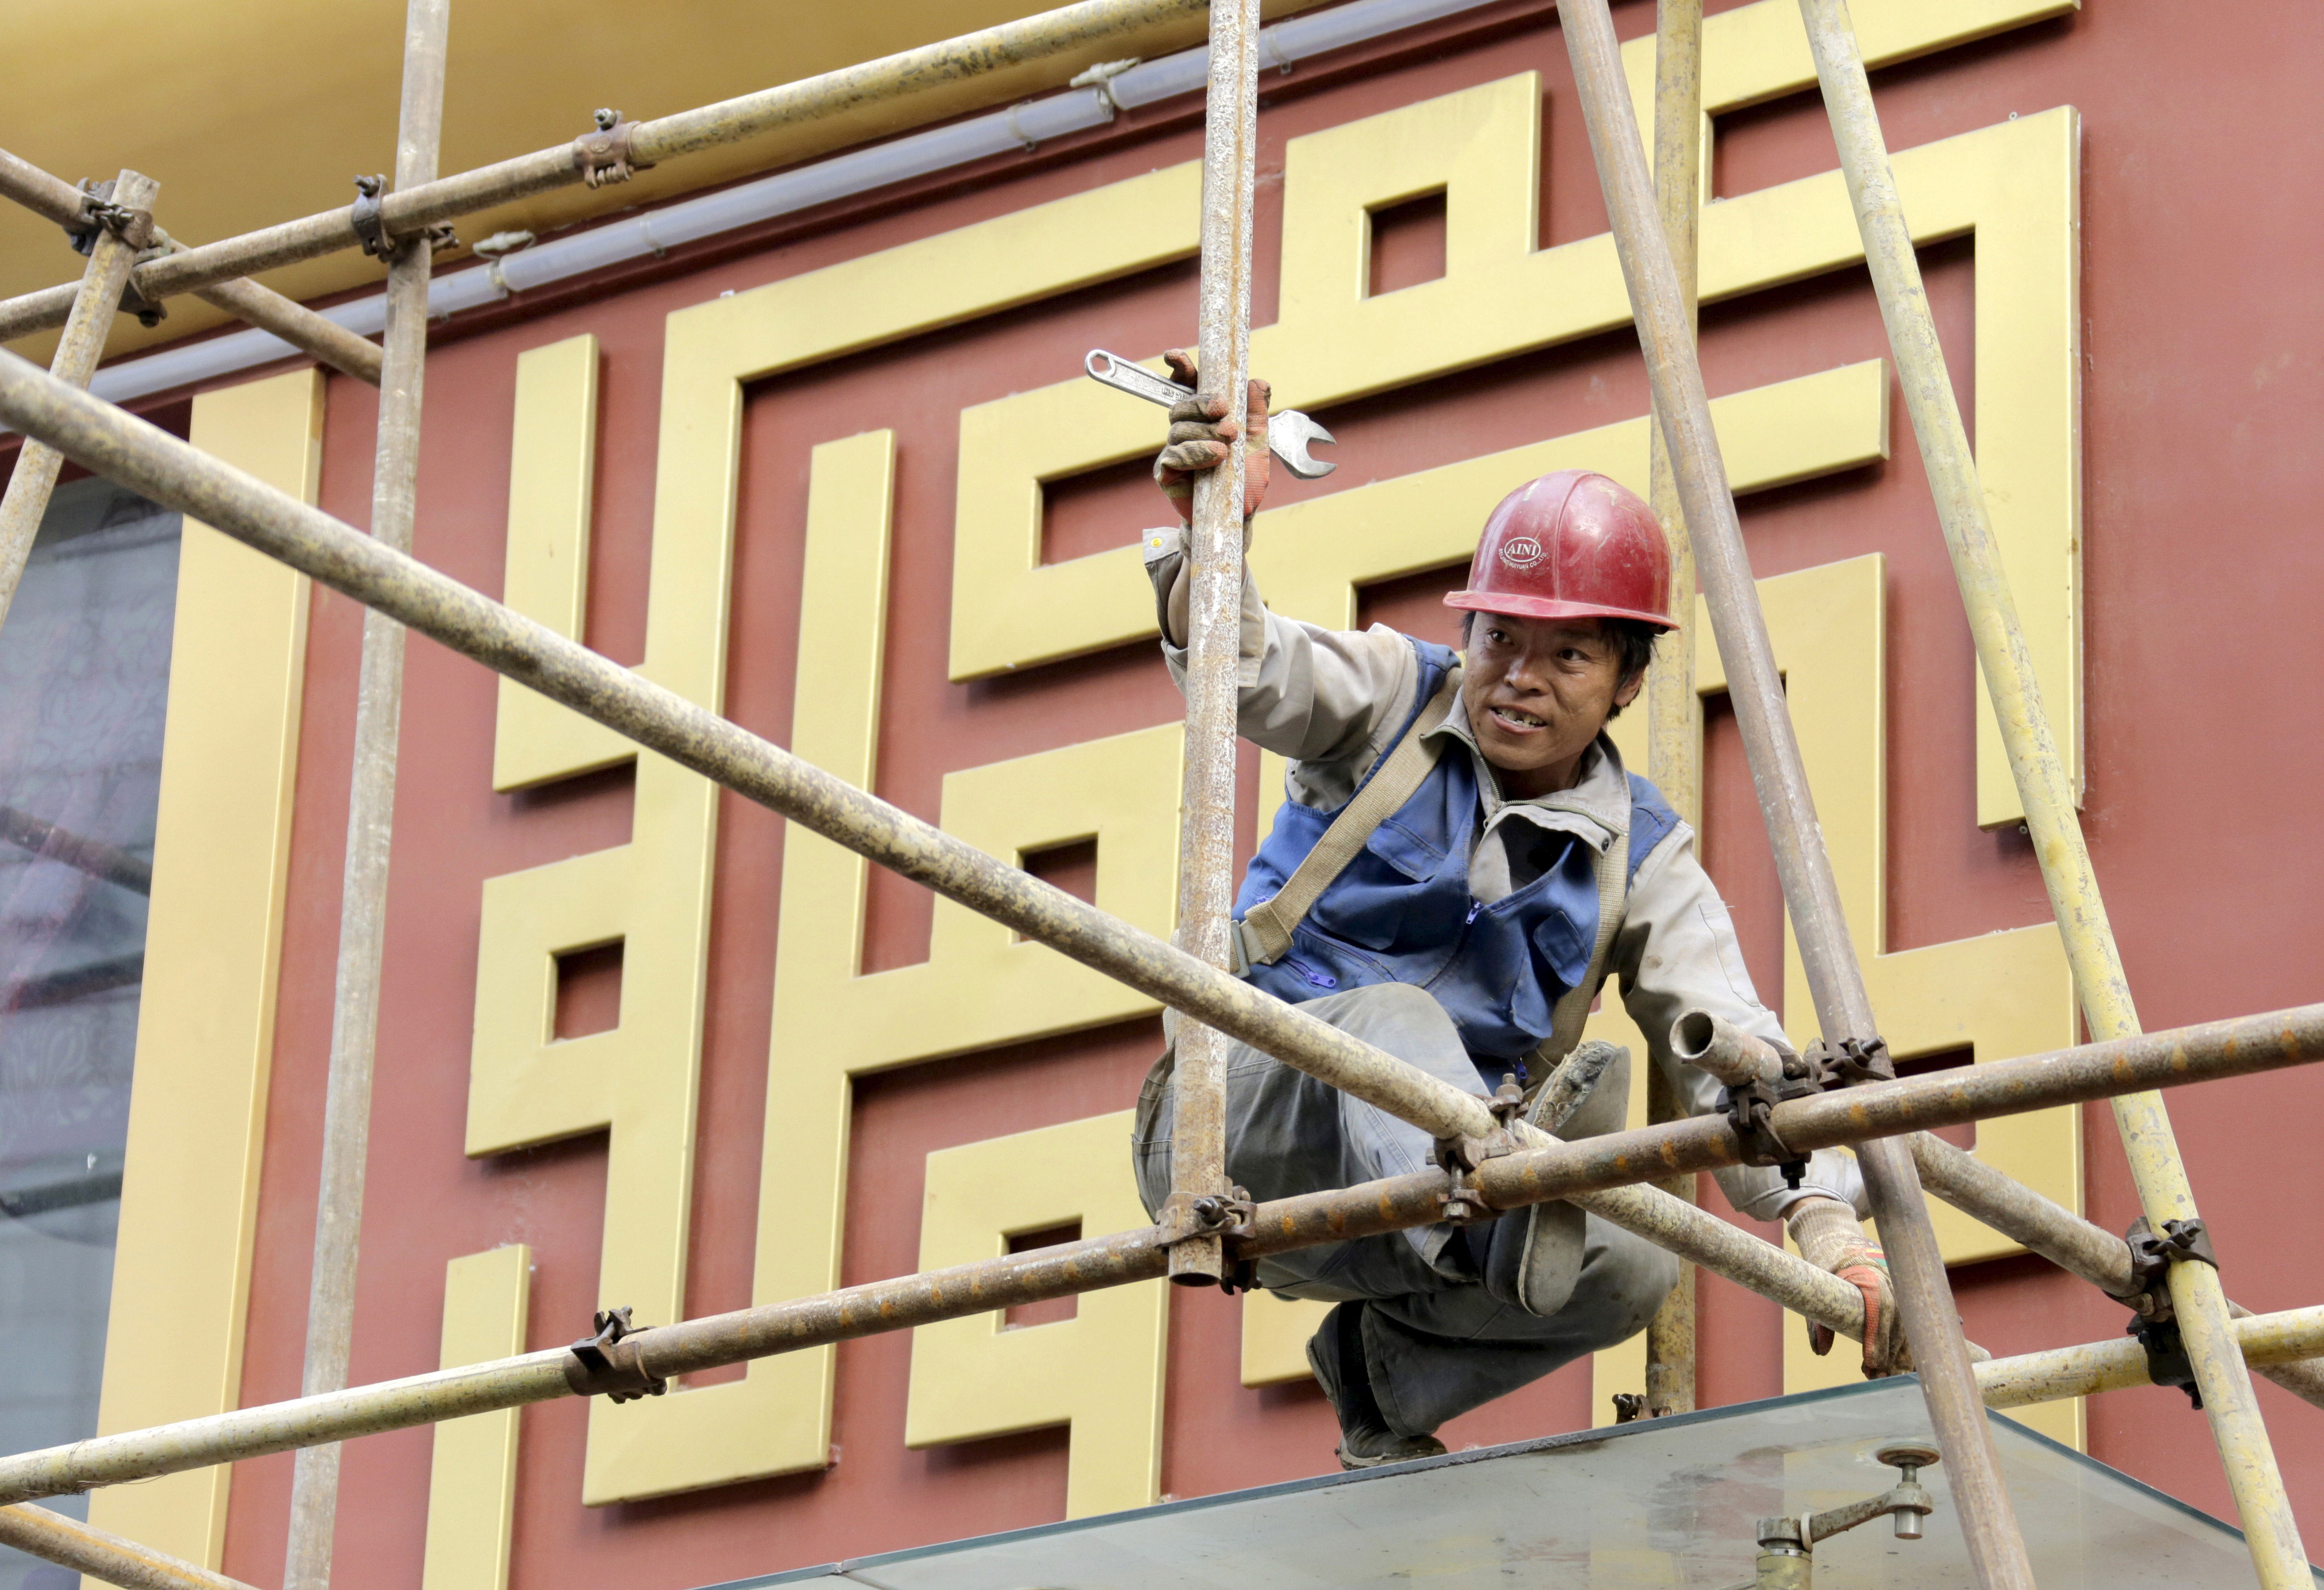 China's growth falls to 6.9% in July-Sep